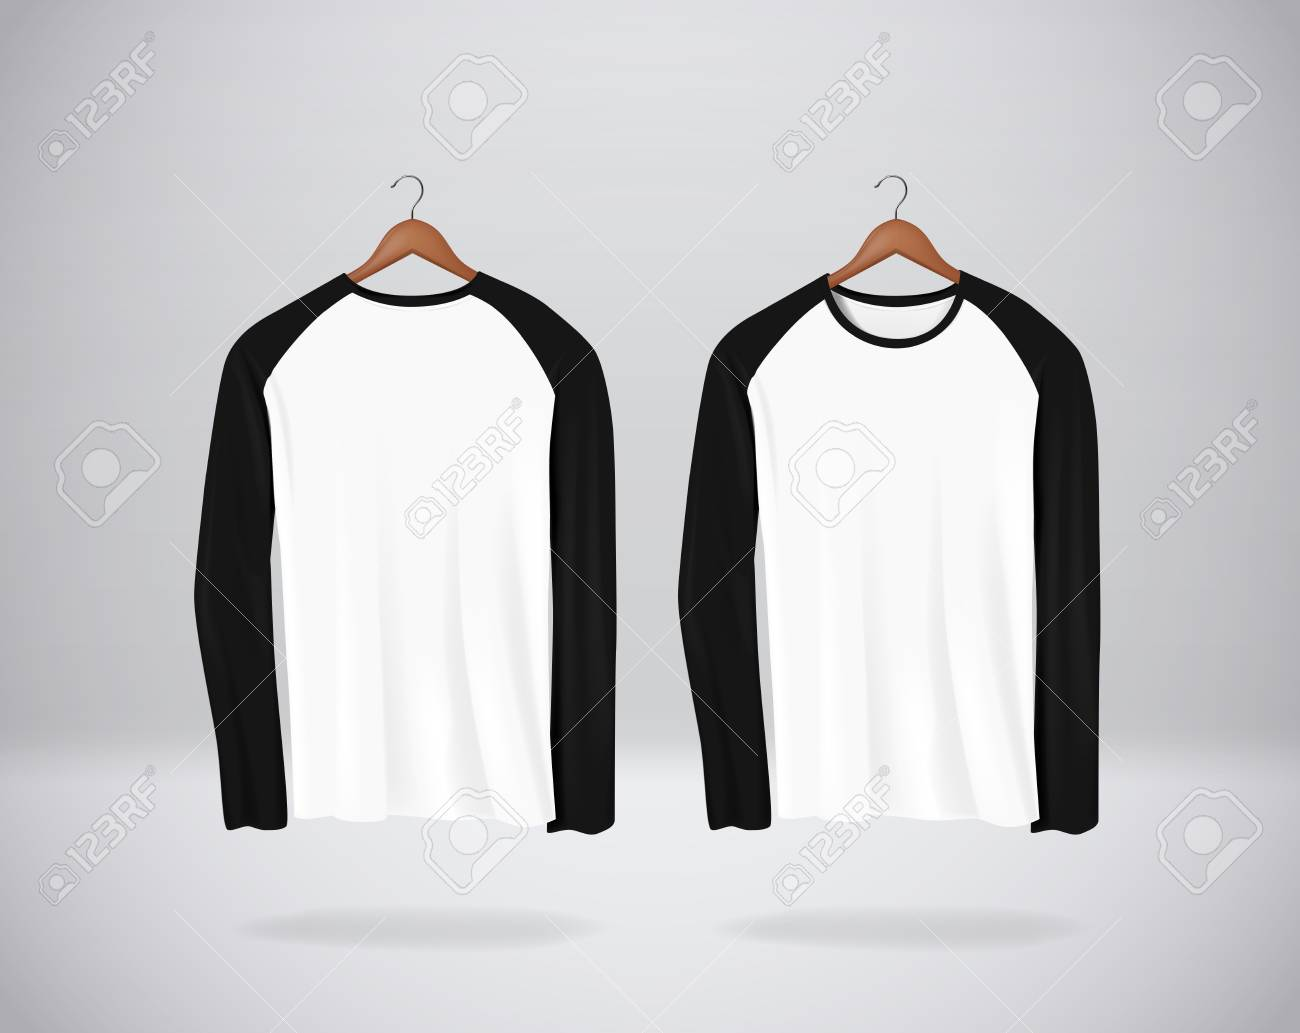 Long sleeve Baseball T-Shirts Mock-up clothes hanging isolated on wall, blank front and rear side view. - 117663670